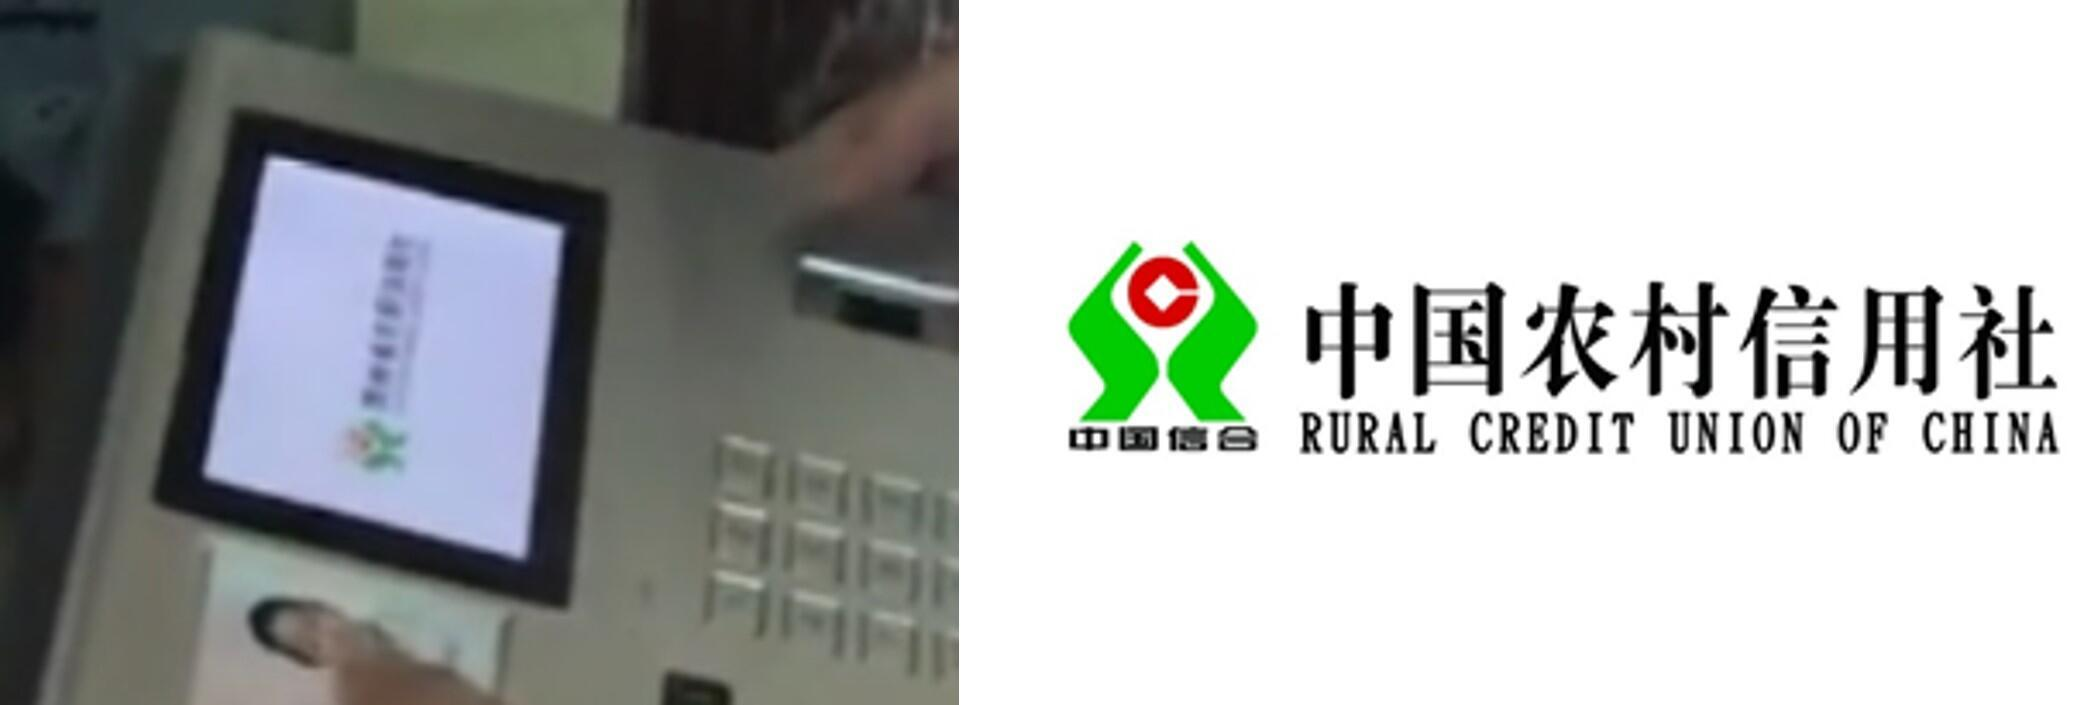 On the left, a screen capture of one of the videos showing one of these devices. On the right, the logo of the Rural Credit Union of China bank.